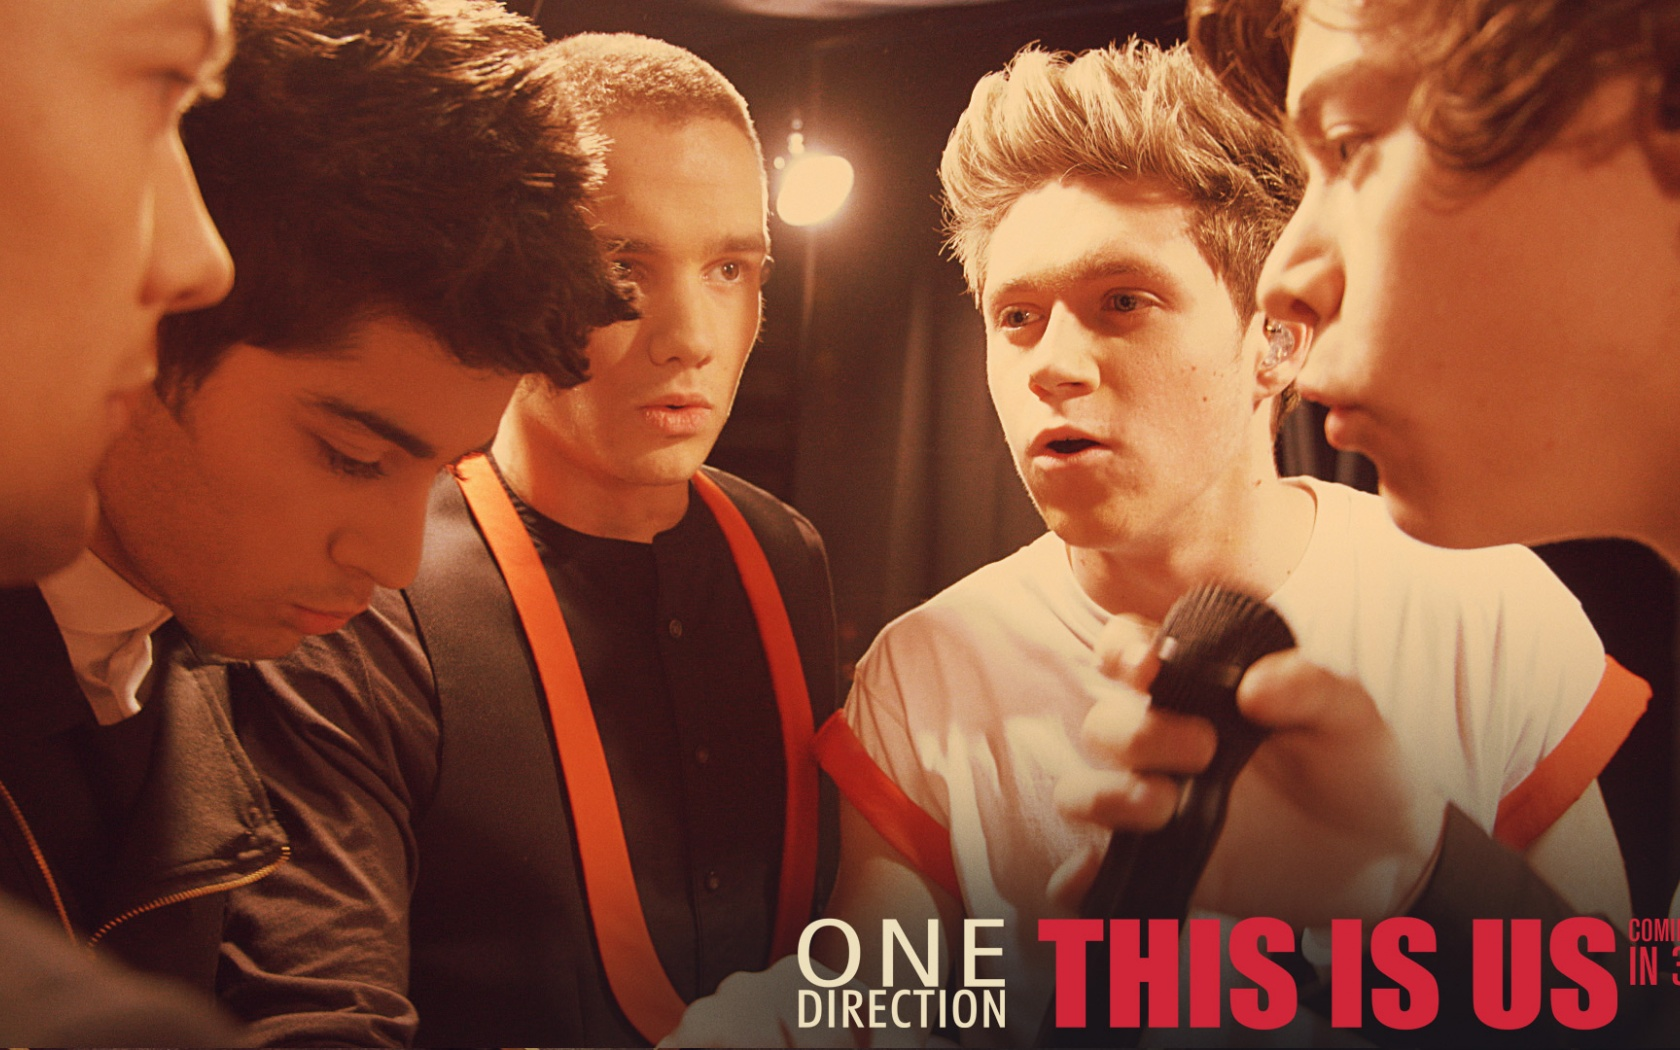 1500x500 One Direction This Is Us Twitter Header Photo